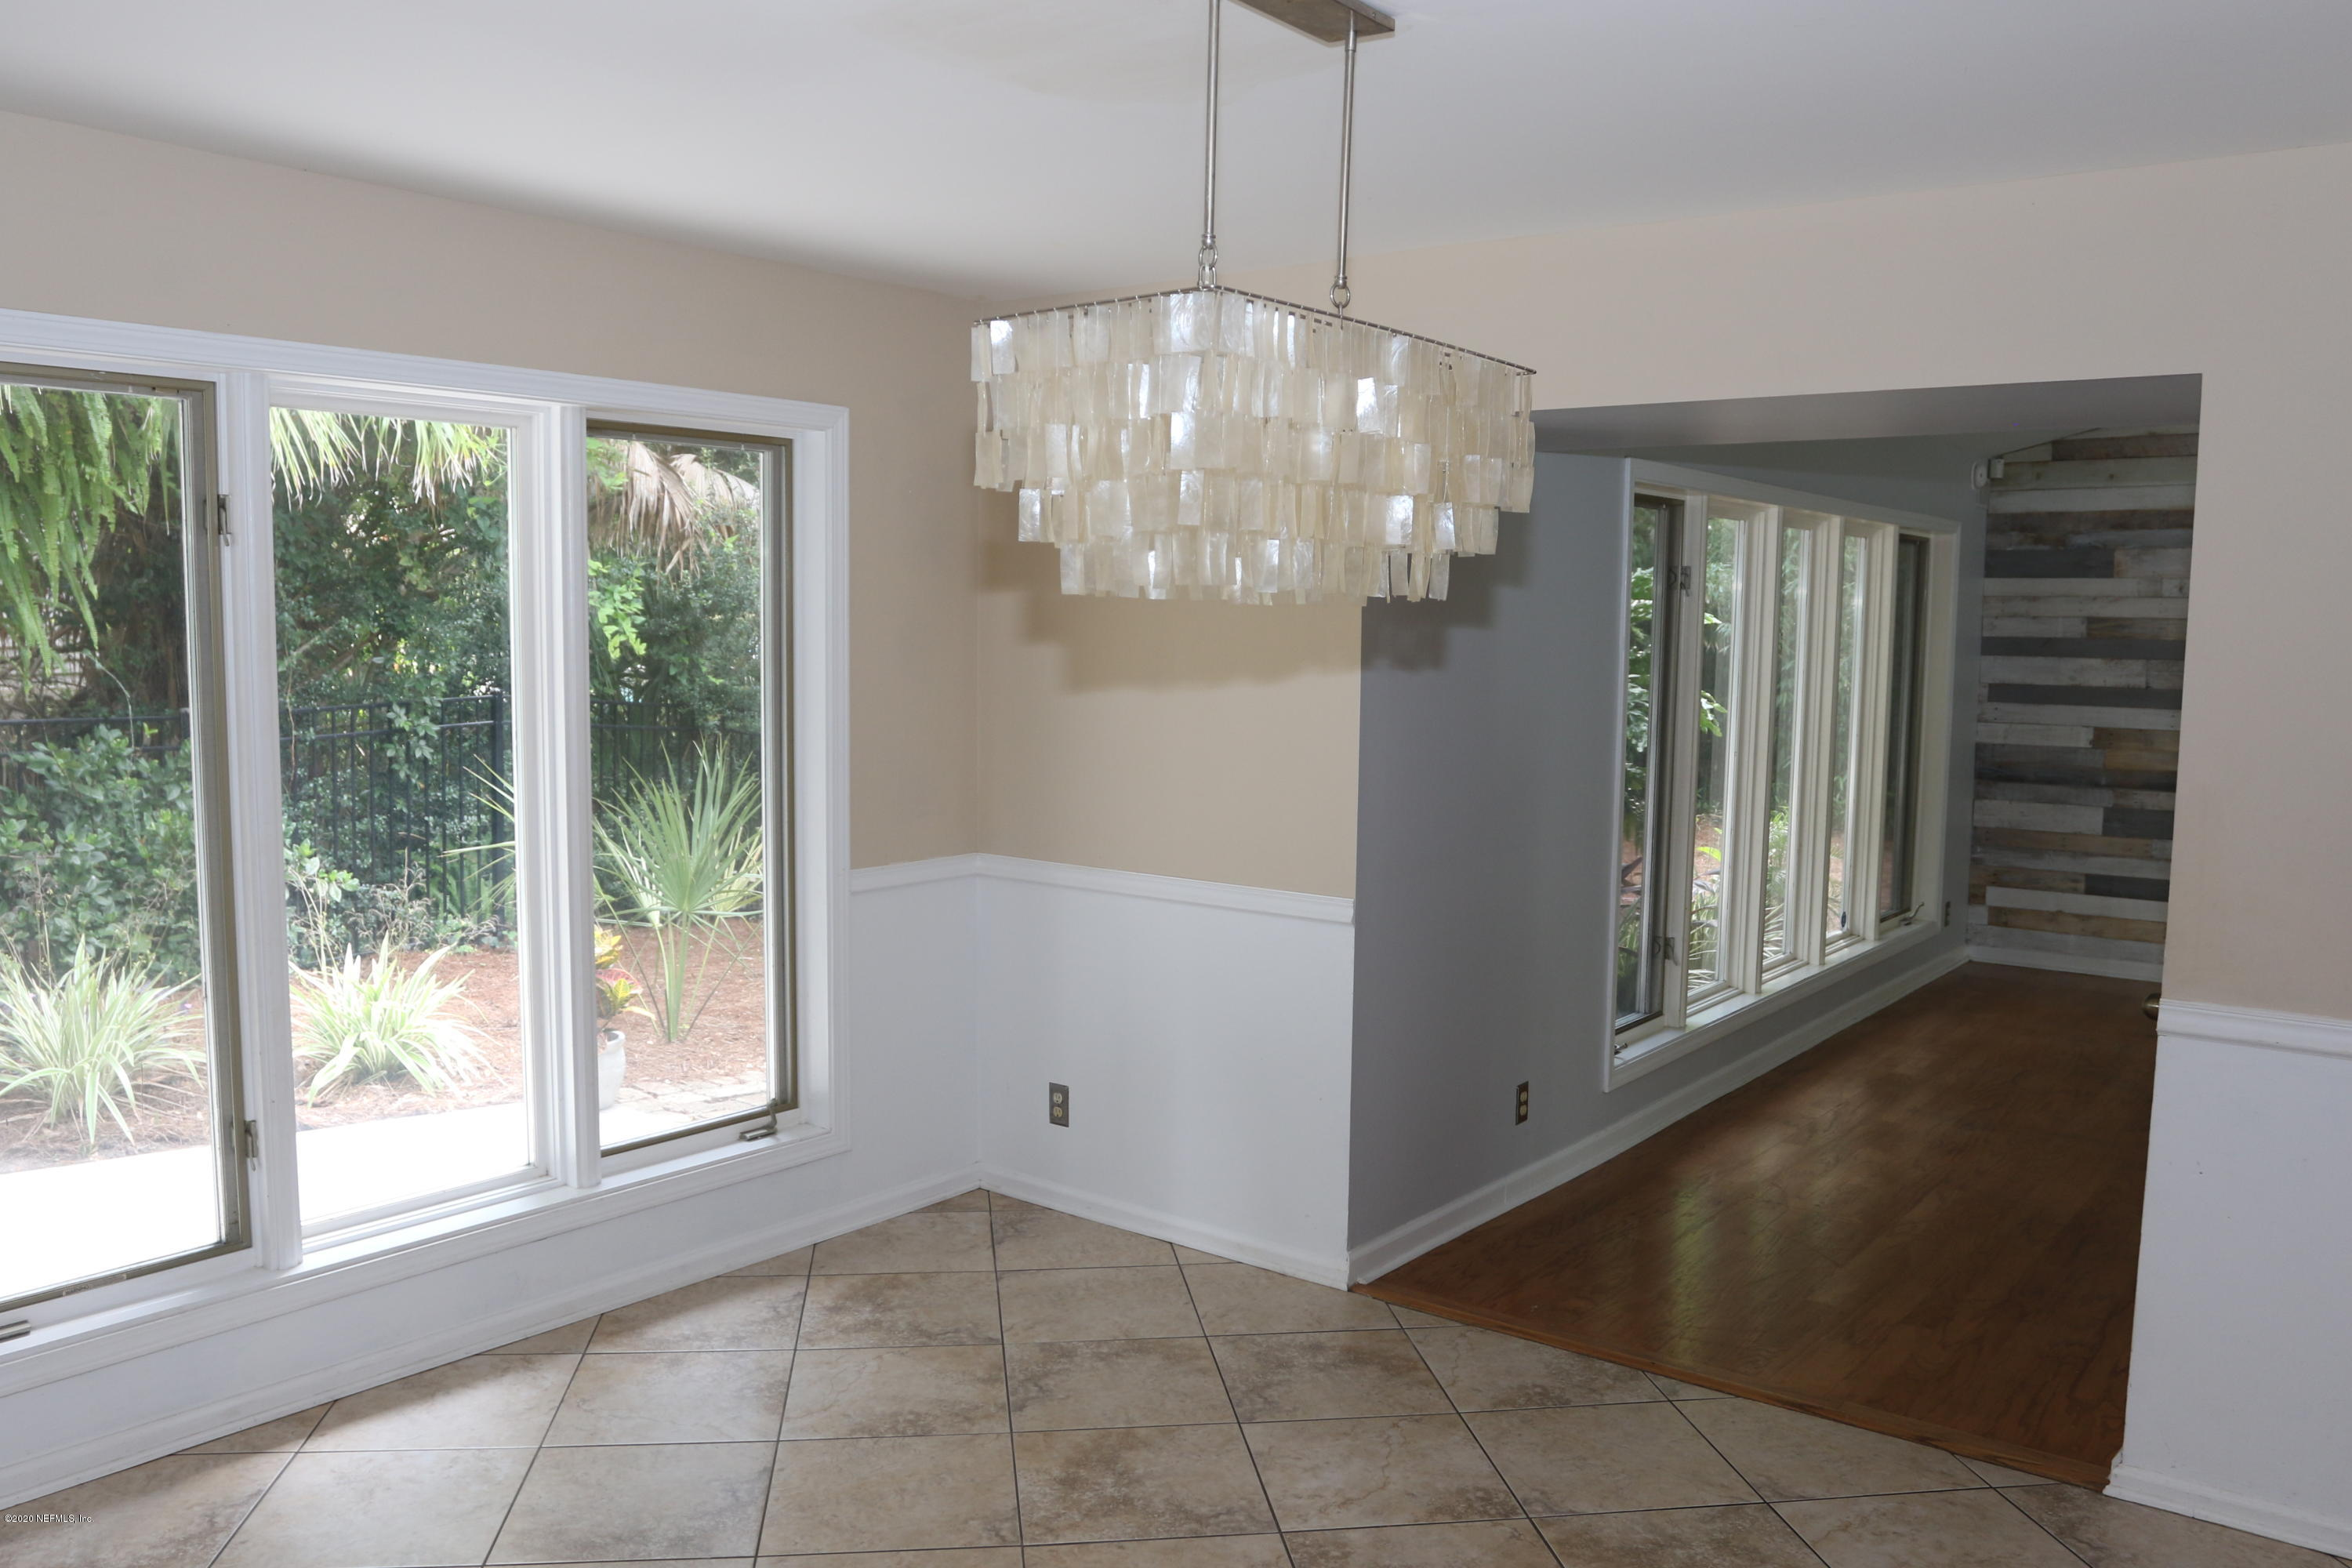 2233 LAUGHING GULL, ATLANTIC BEACH, FLORIDA 32233, 4 Bedrooms Bedrooms, ,3 BathroomsBathrooms,Residential,For sale,LAUGHING GULL,1057983